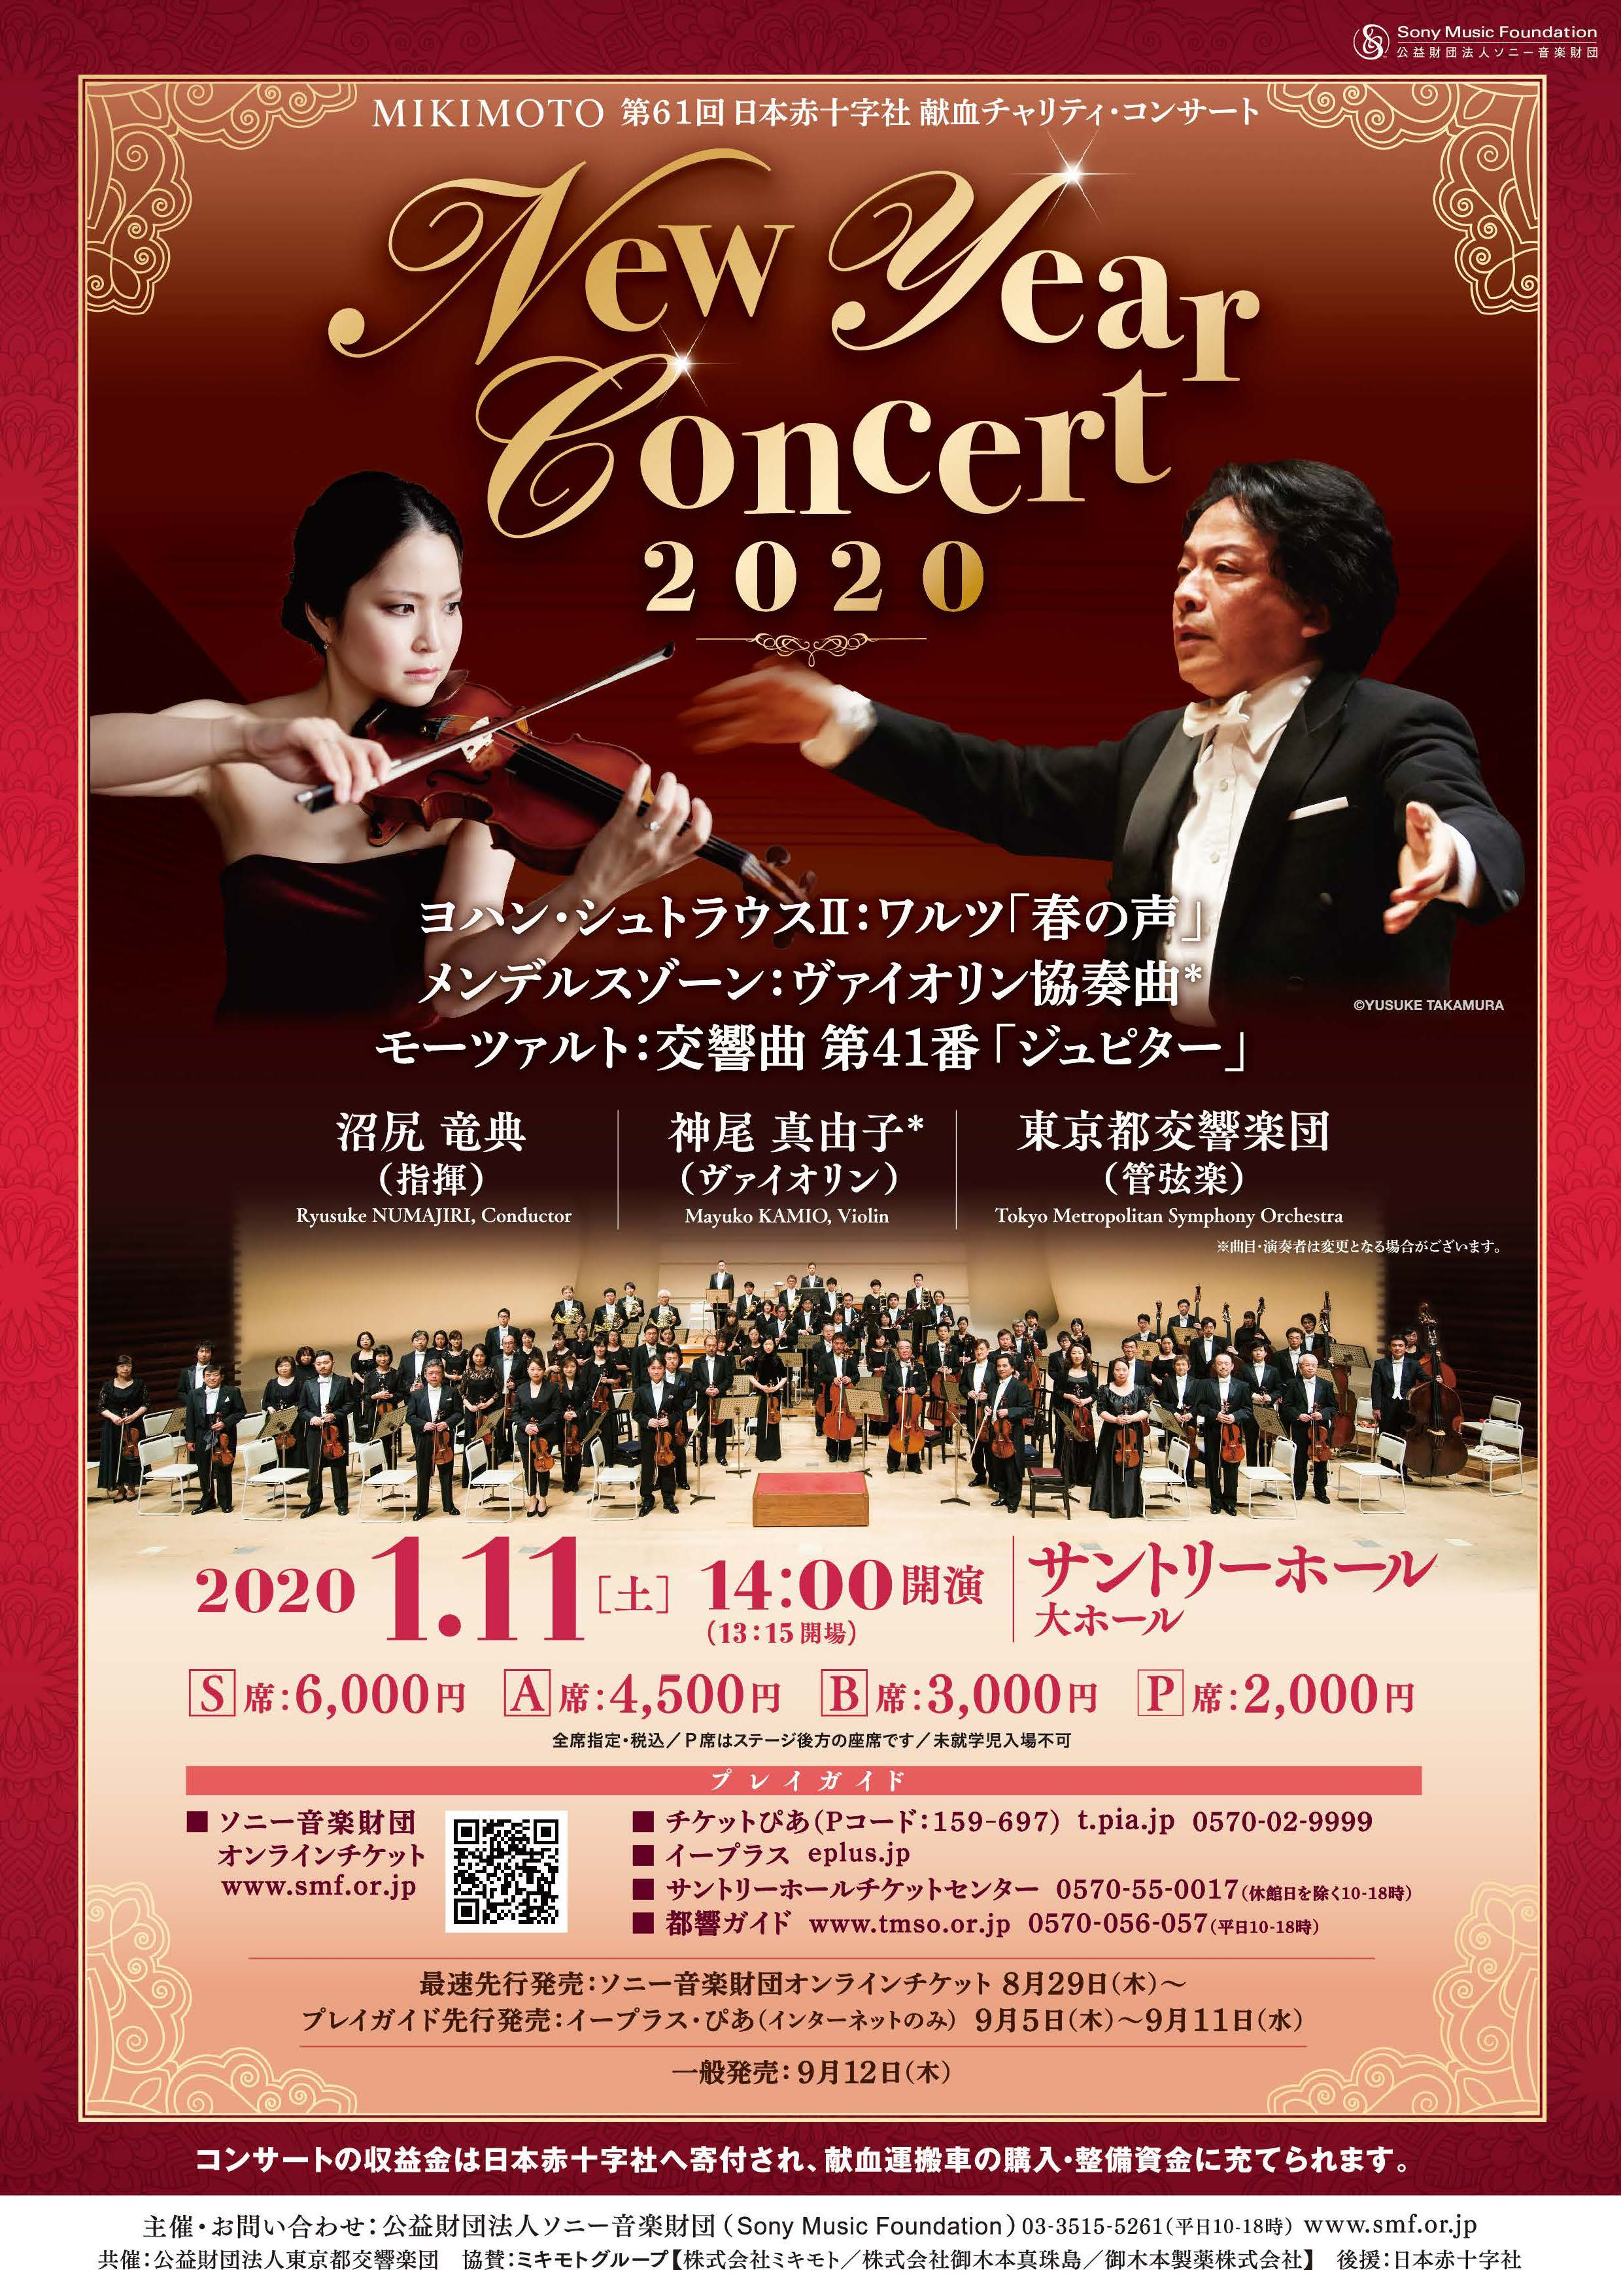 MIKIMOTO 第61回 日本赤十字社 献血チャリティ・コンサート New Year Concert 2020